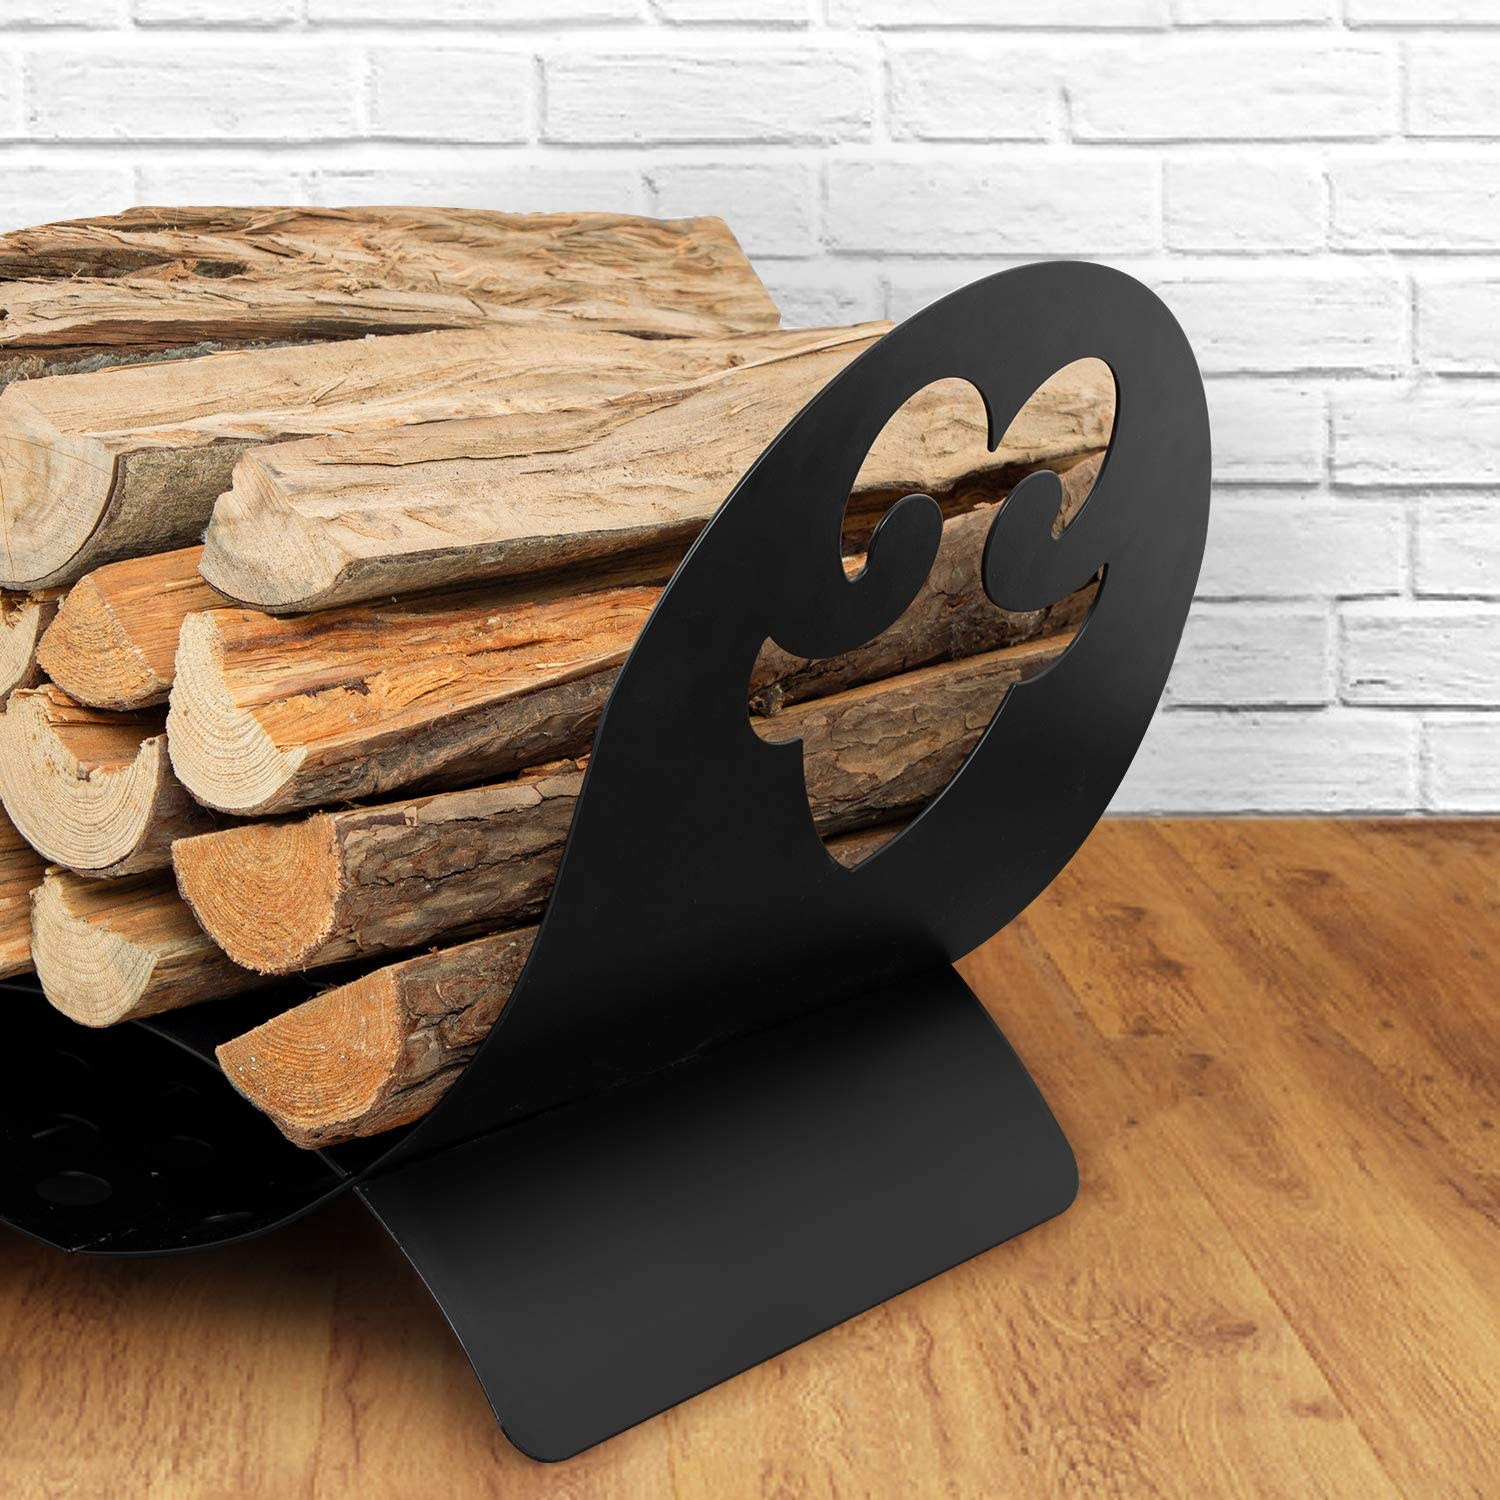 Amagabeli Fireplace Log Holder Firewood Basket Wrought Iron Fireset Carrier Wood Stove Stacking Rack Logs Bin Storage Carrier Container Tool Sets Metal Indoor Kindling Hearth Outdoor Accessories Black